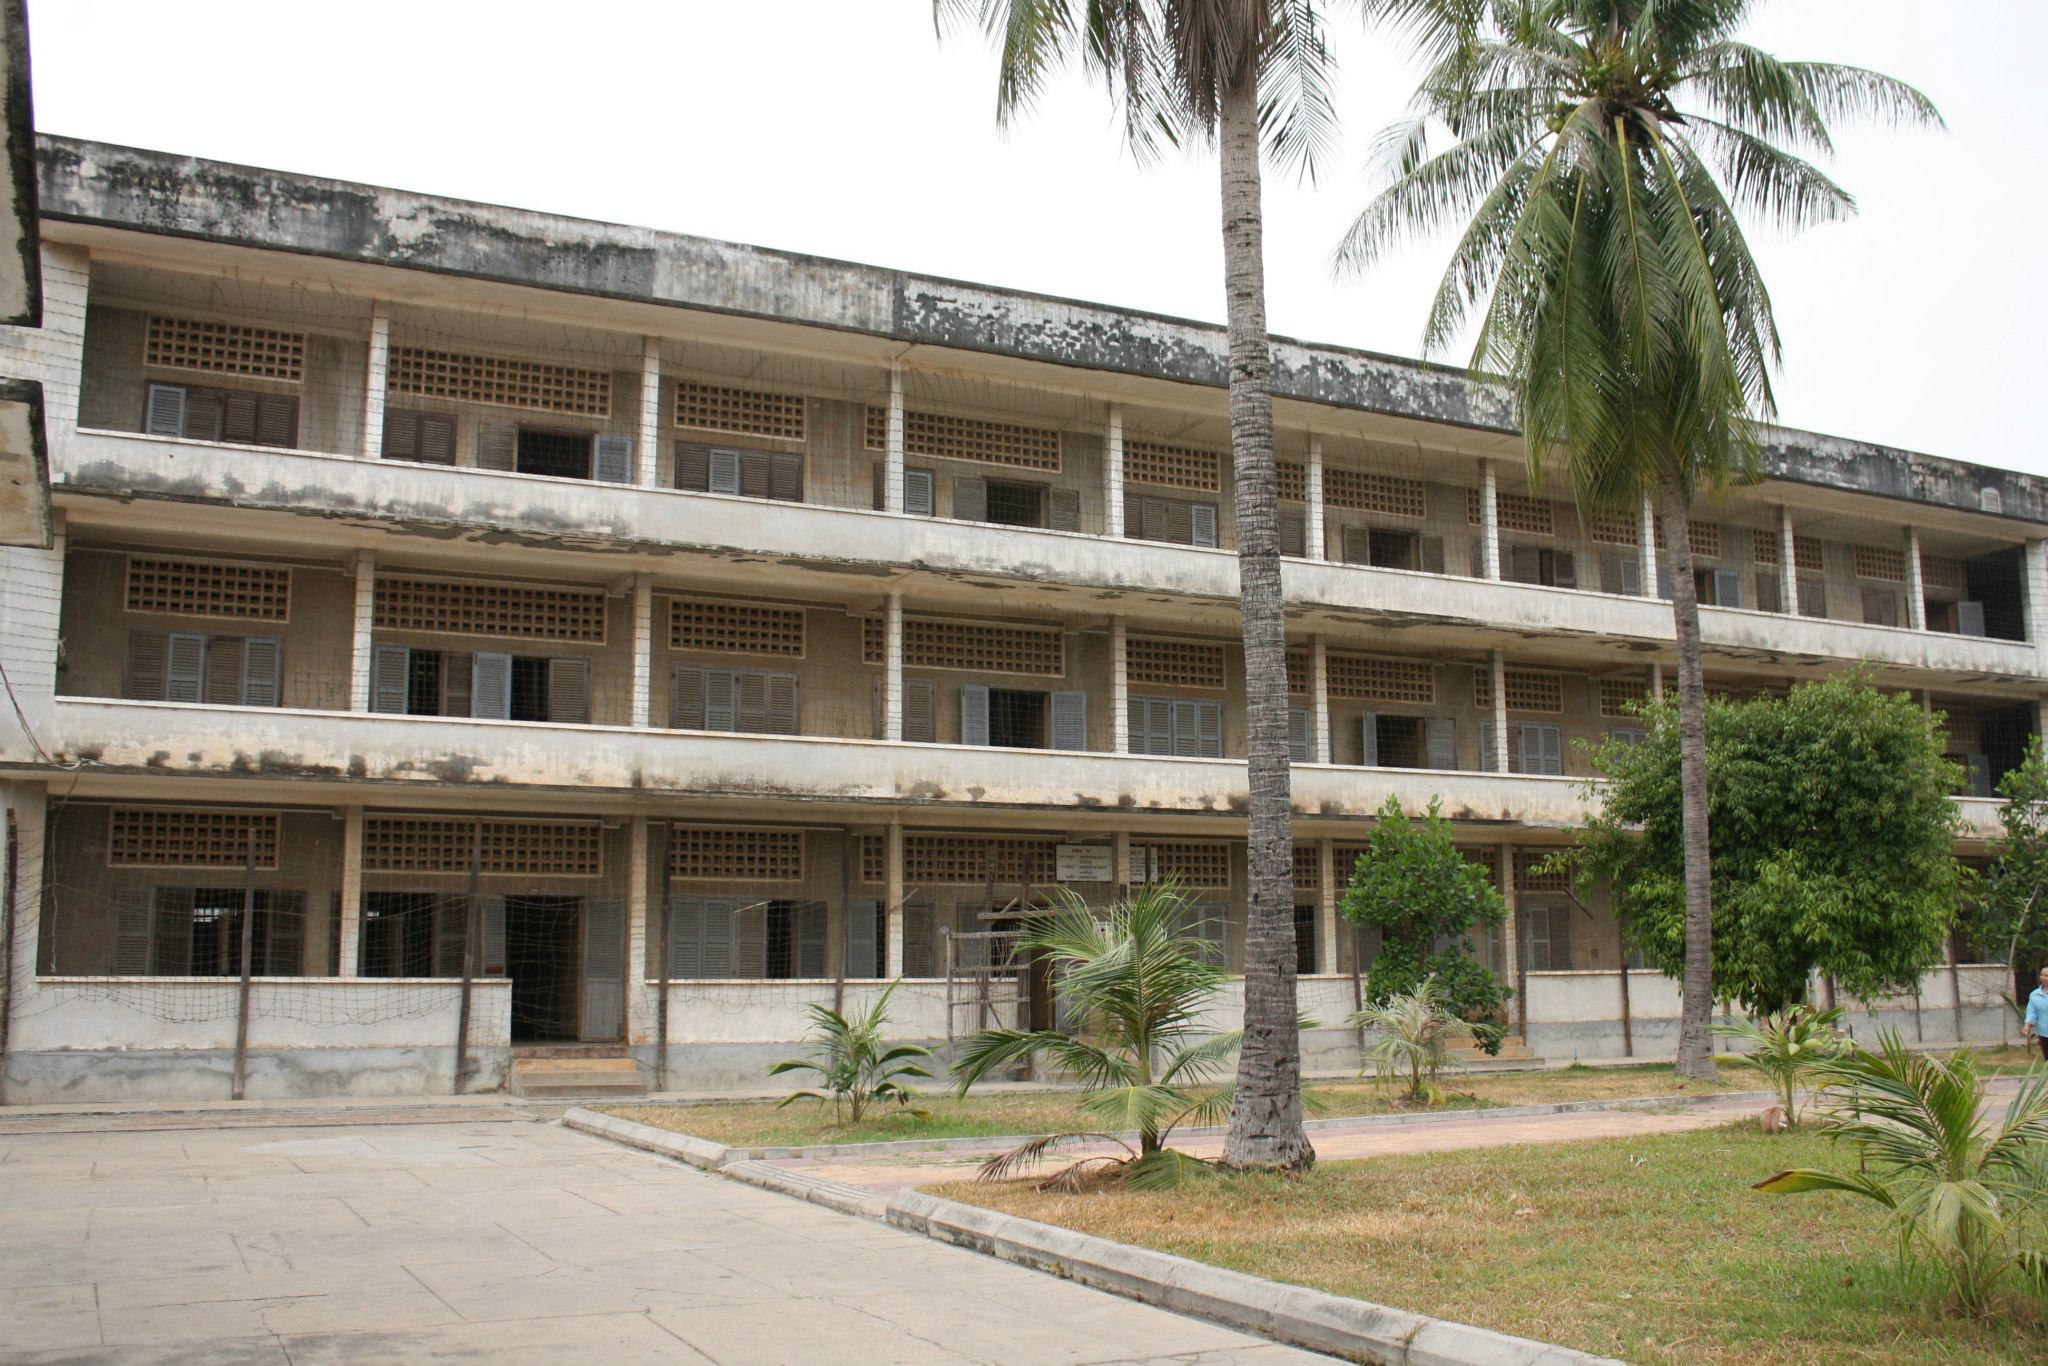 The main building of S-21, or Tuol Sleng prison in Phnom Penh, Cambodia.